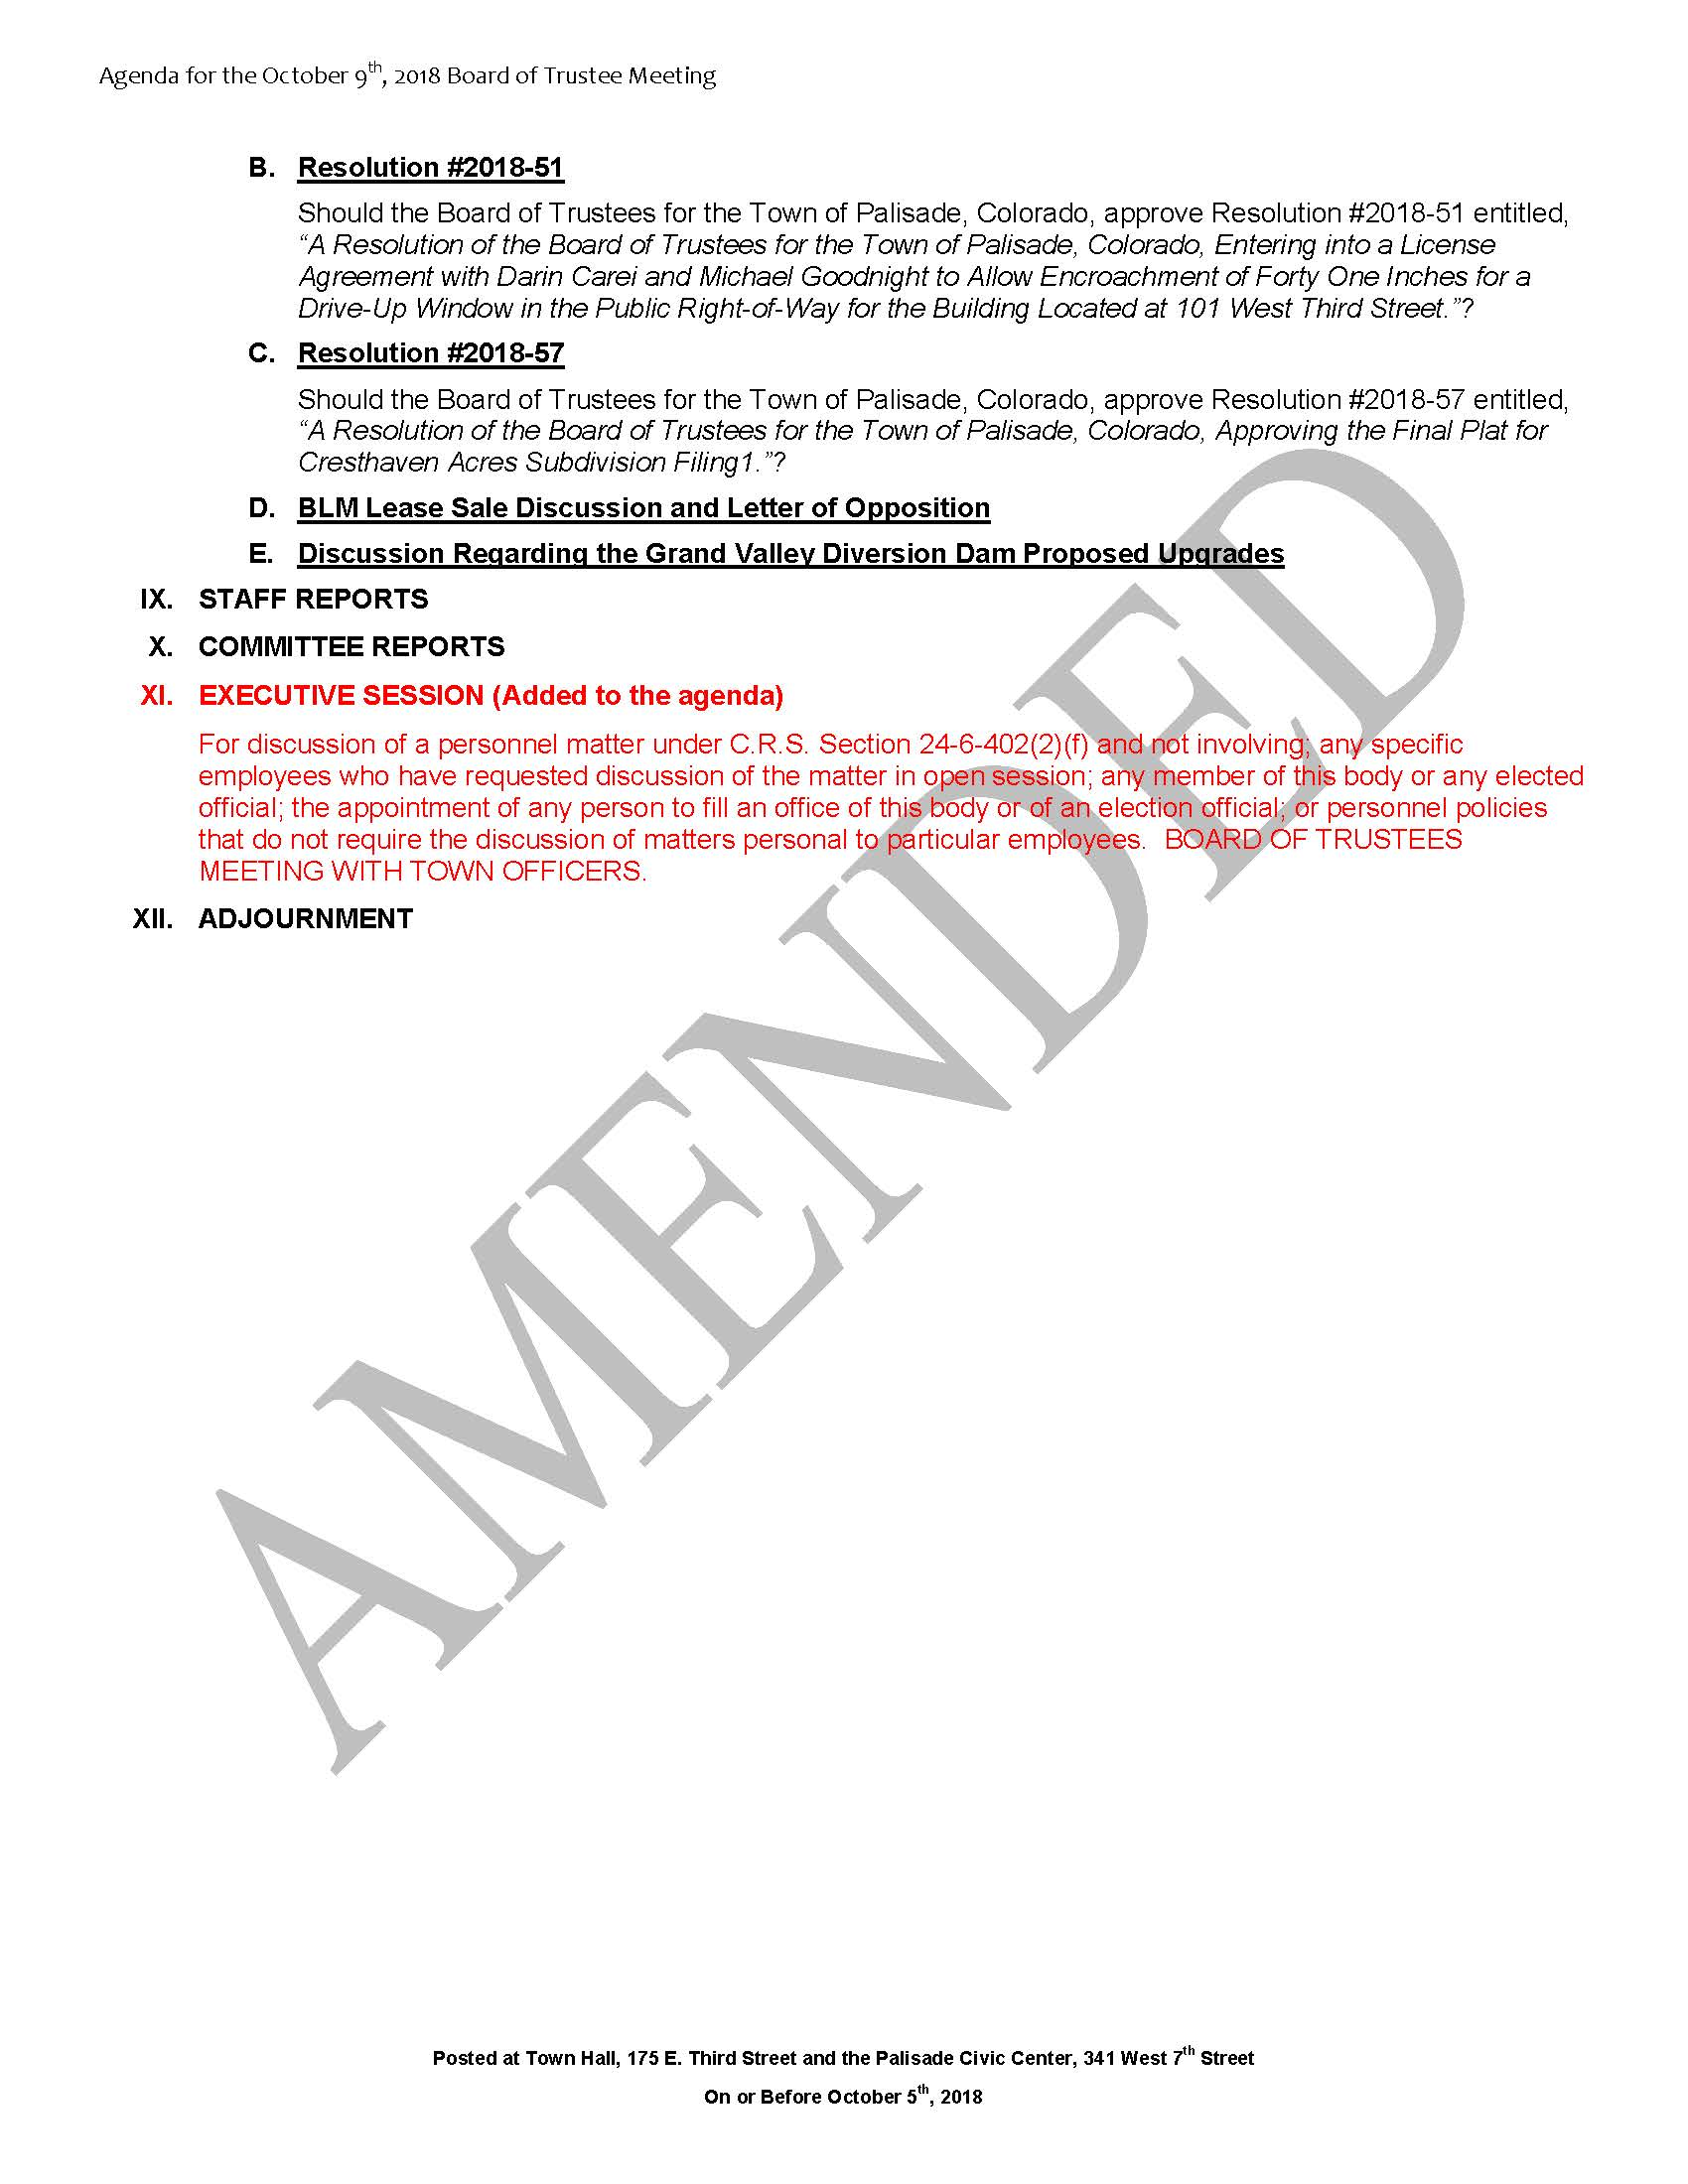 October 9th 2018 Board Meeting Agenda Page 2